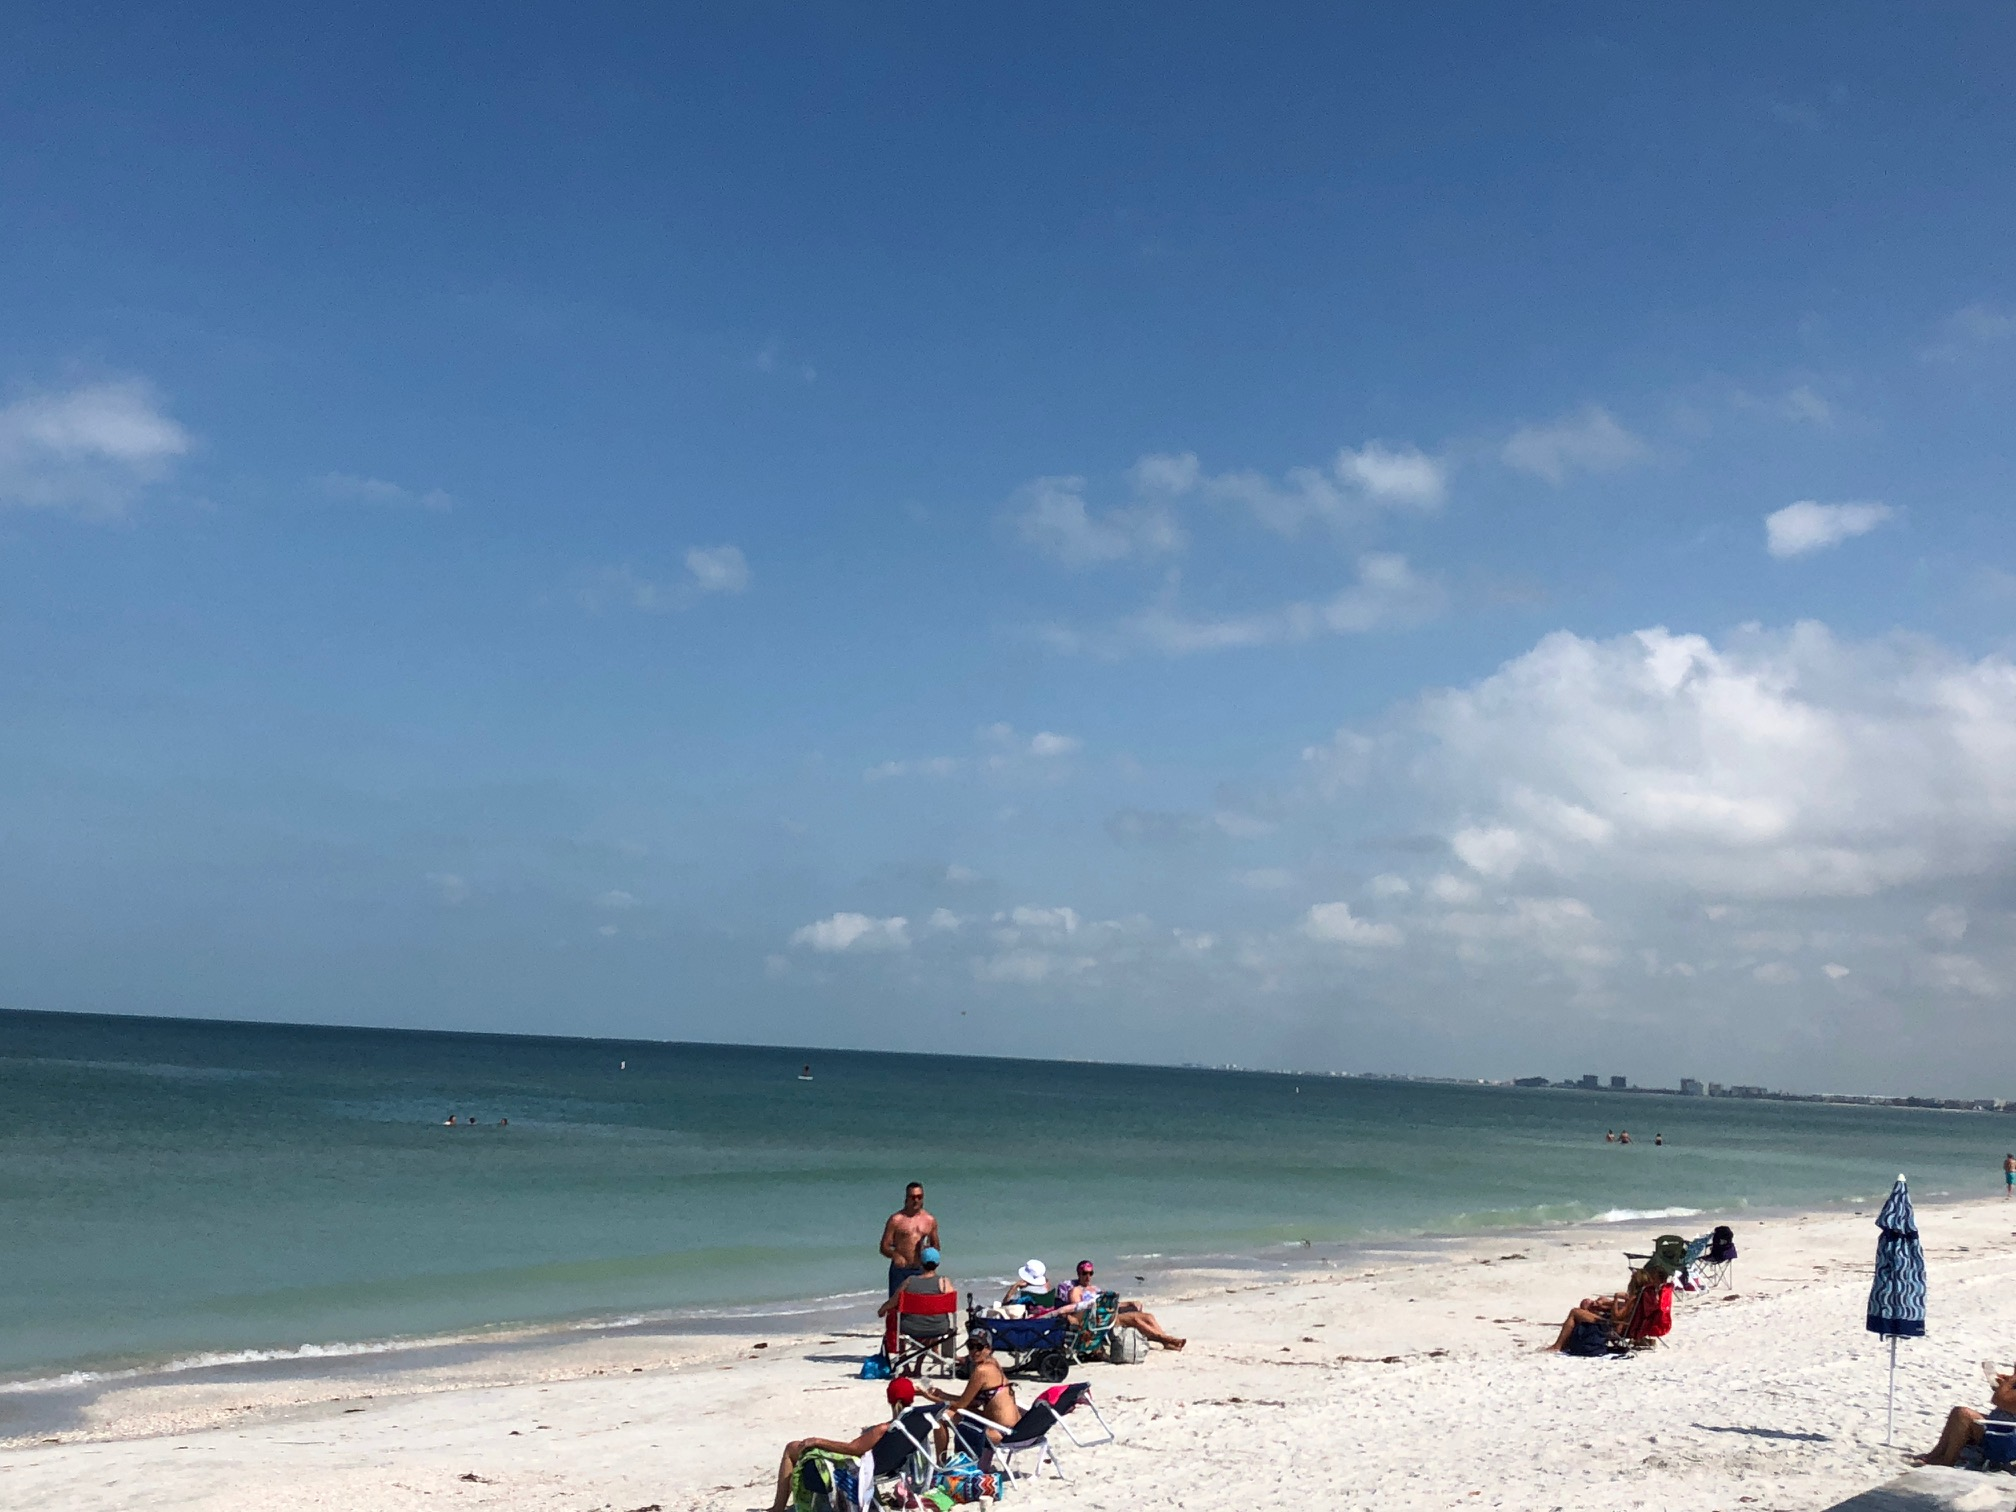 Hit the beach - St. Pete boasts many beaches. It seems the most popular of these choices is Clearwater Beach which has not only the beach but also various other attractions and establishments.While I was in St. Pete, my friend and I decided to visit Pass-A-Grille beach. We opted for this one, as it is said to be quieter and less mainstream. Upon arriving at the beach, we knew we made the right choice for our taste. The water was gorgeous, though still chilly in April, but the beauty of the beach made me forget the temperature of the water.